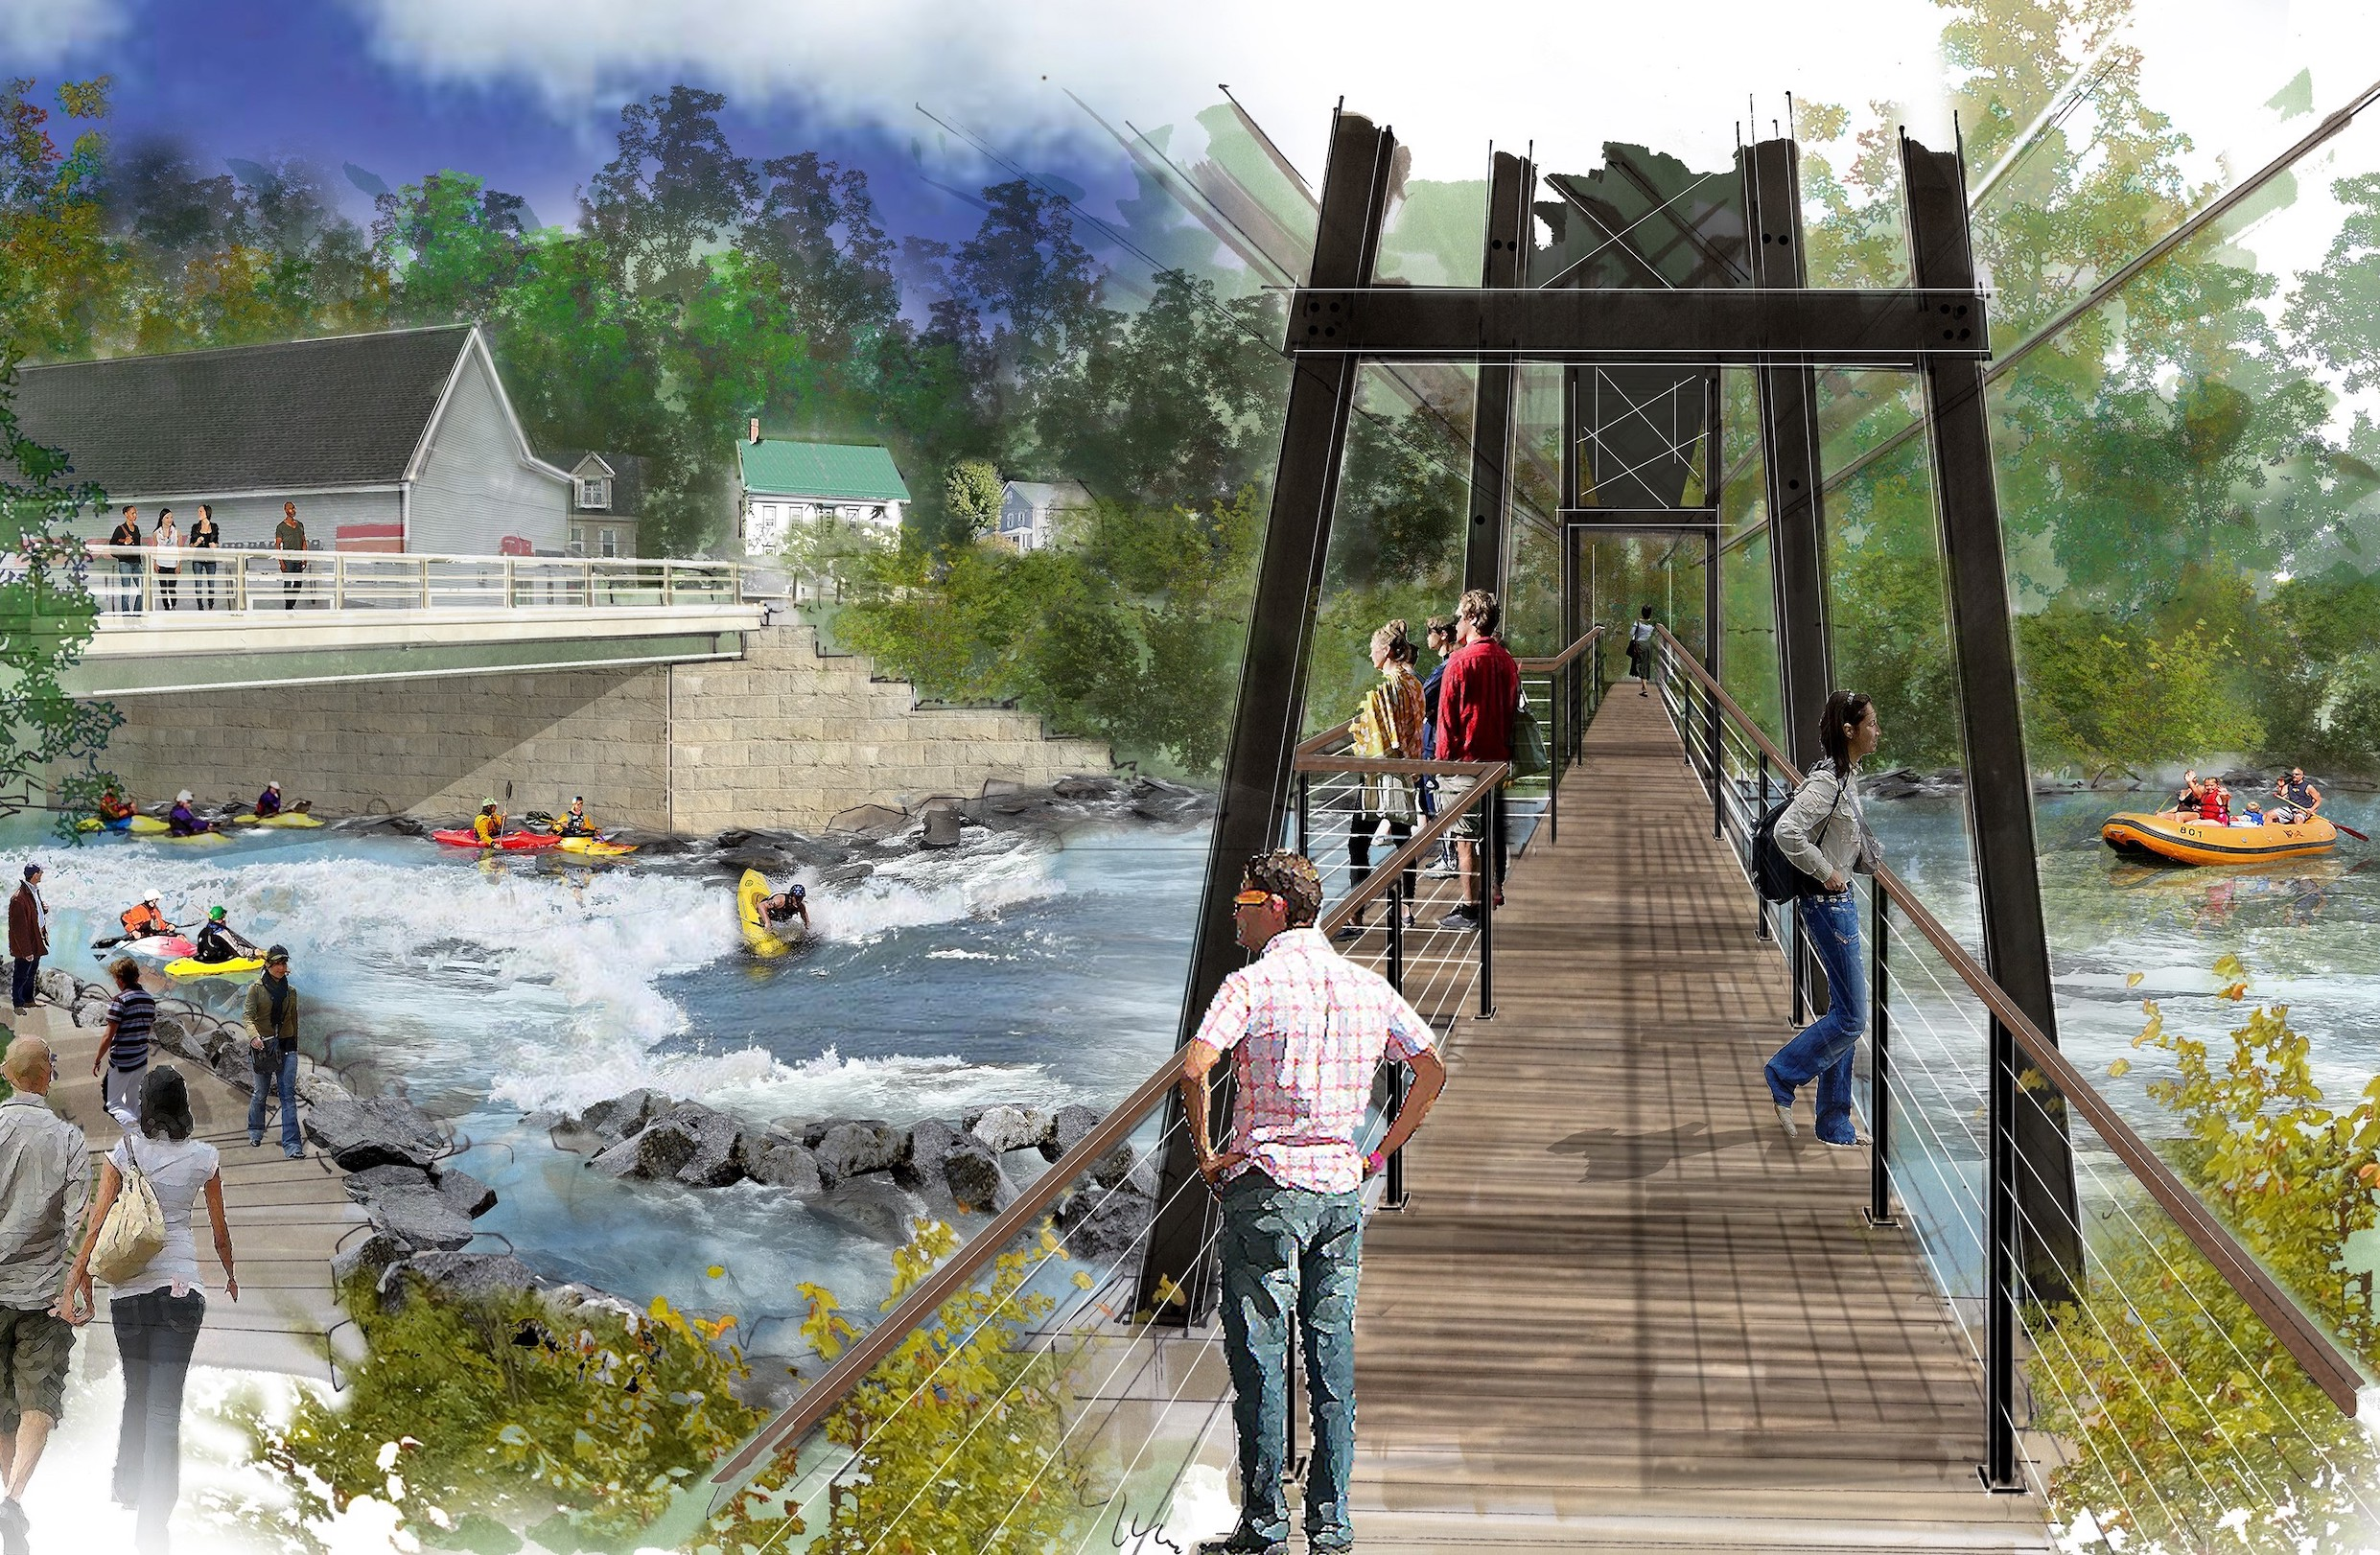 a color sketch and rendering of a whitewater park on a river with a boardwalk bridge and people